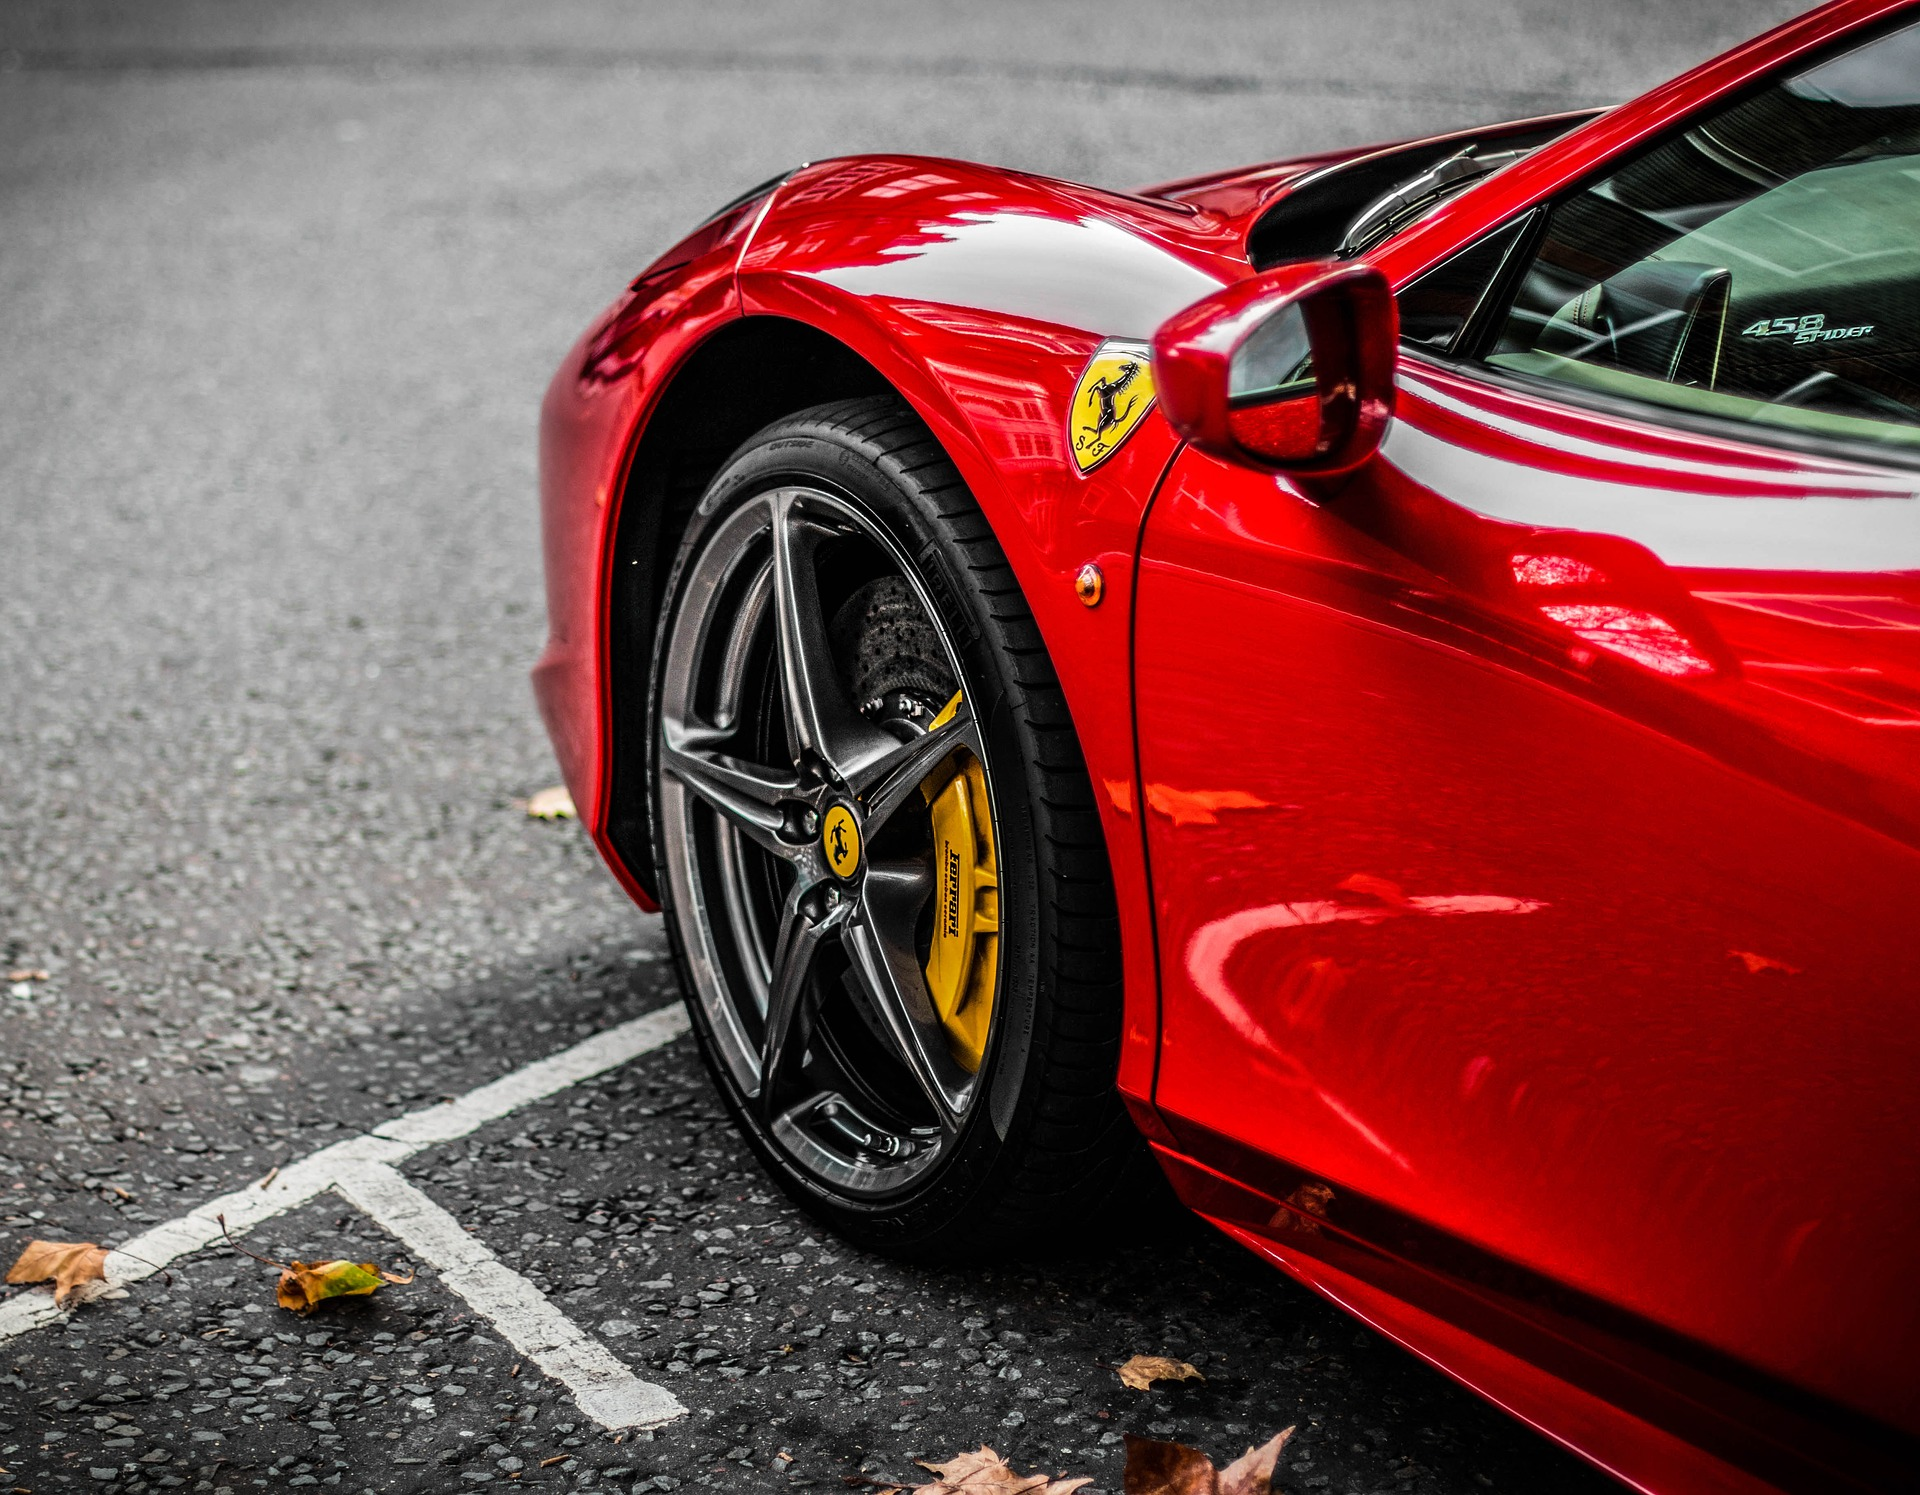 http://maxpixel.freegreatpicture.com/Supercar-Car-Style-Motor-Auto-Vehicle-Ferrari-2932193